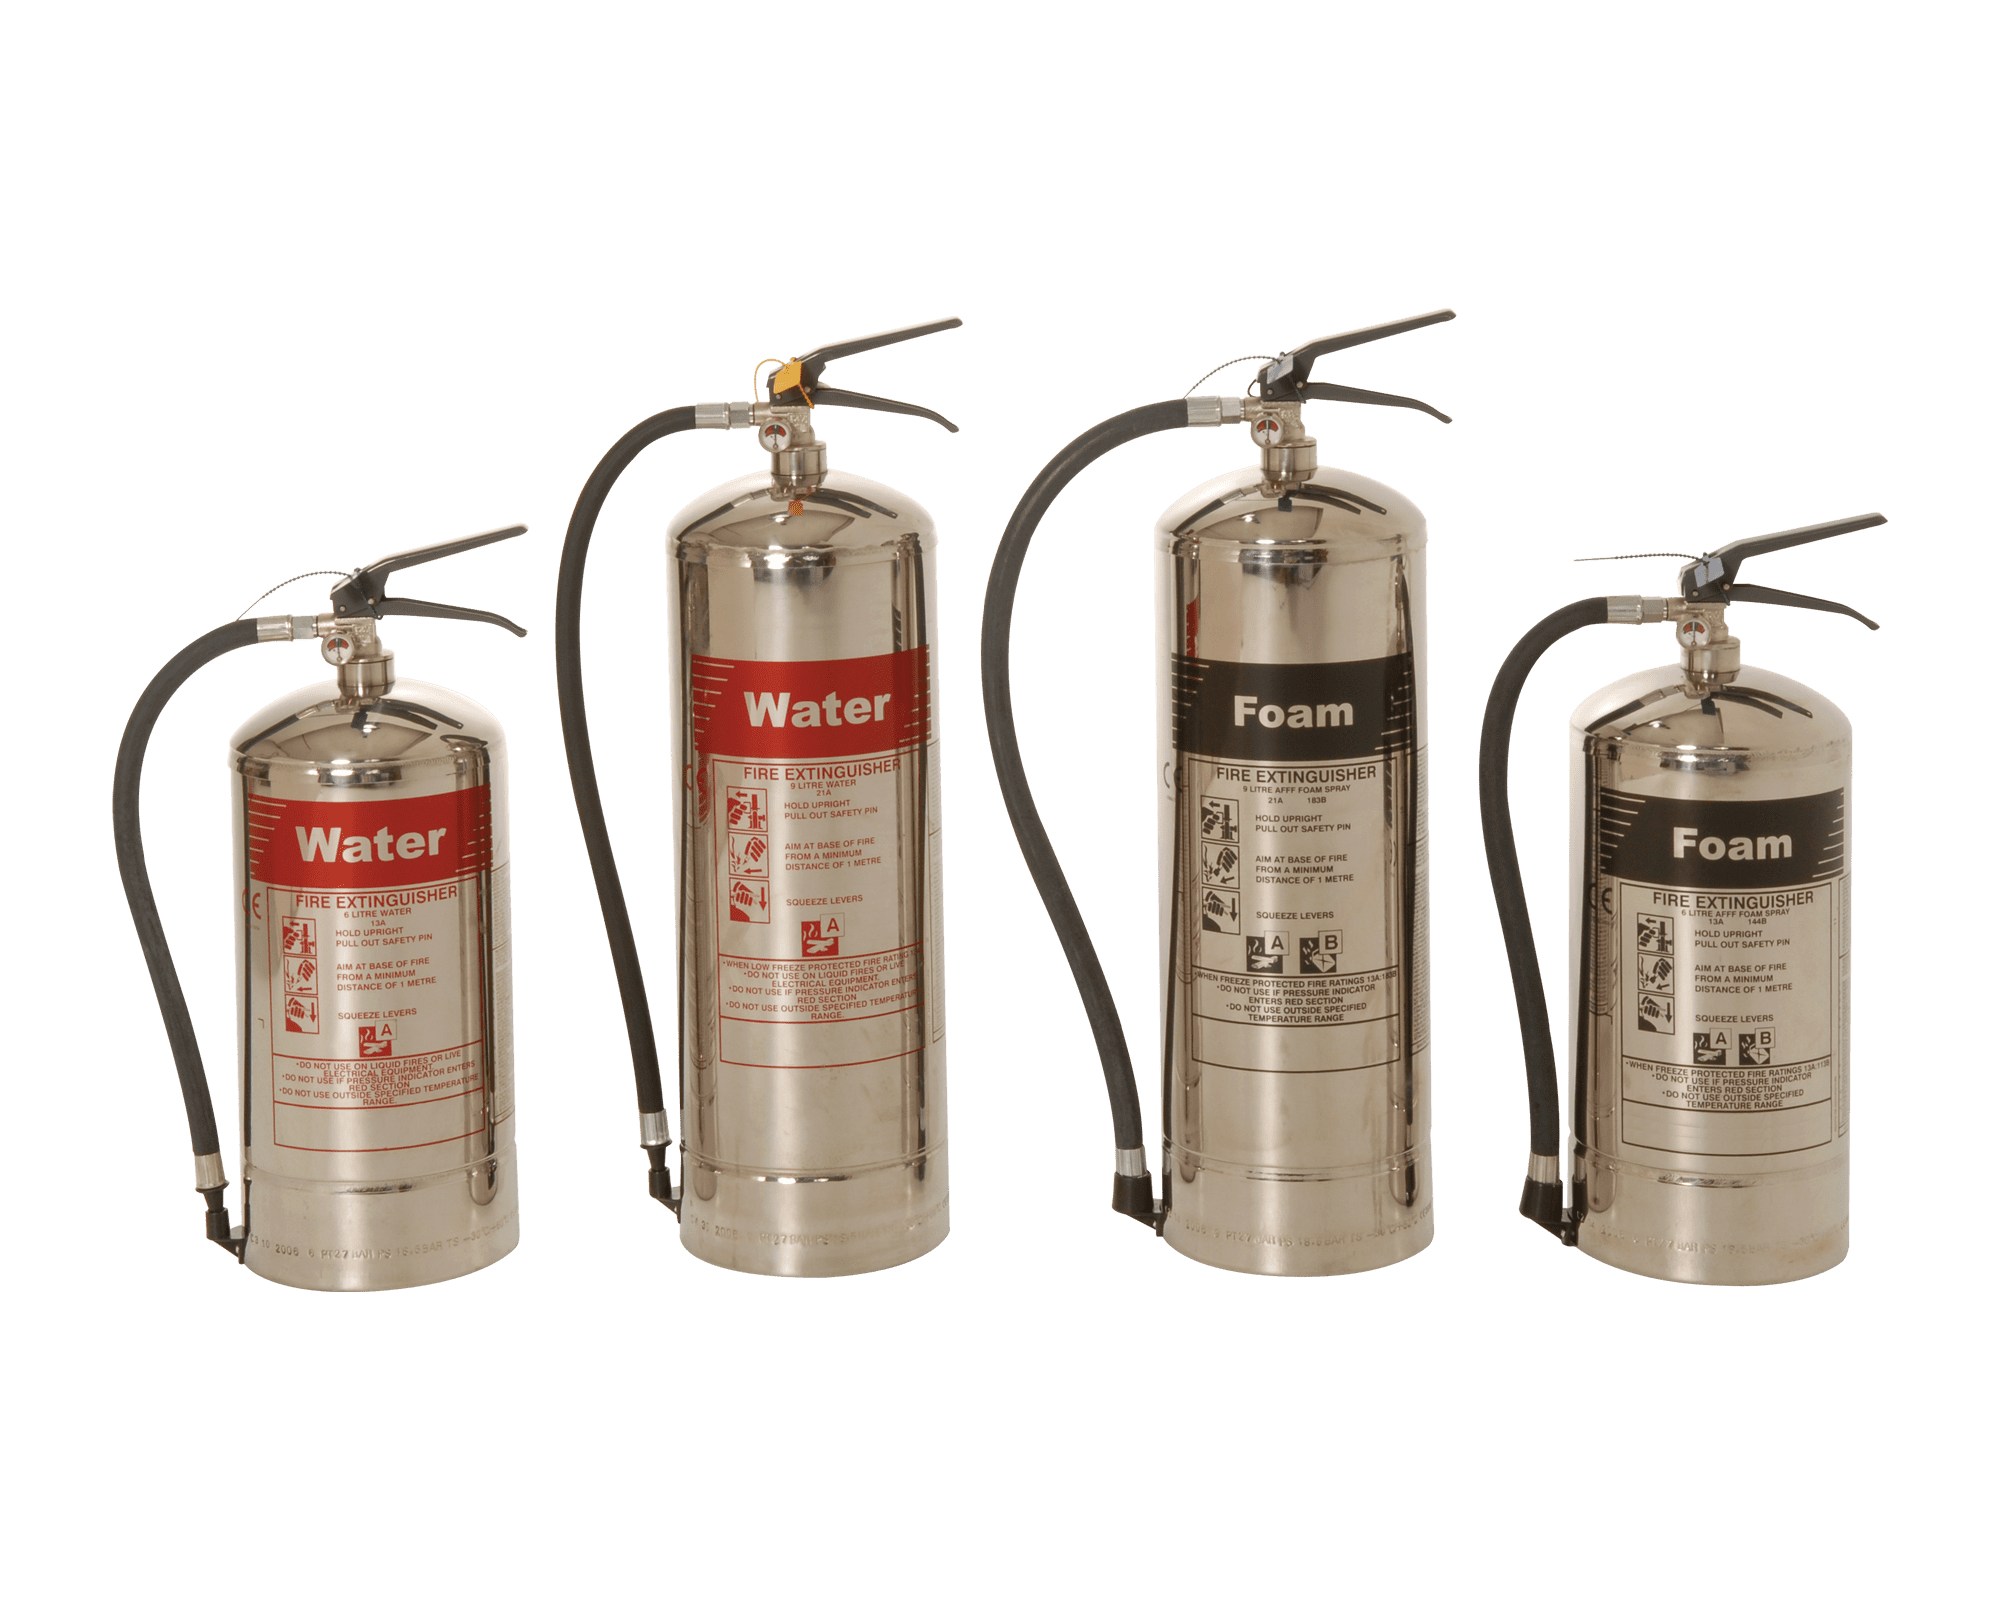 Stainless Protec Steel Extinguishers